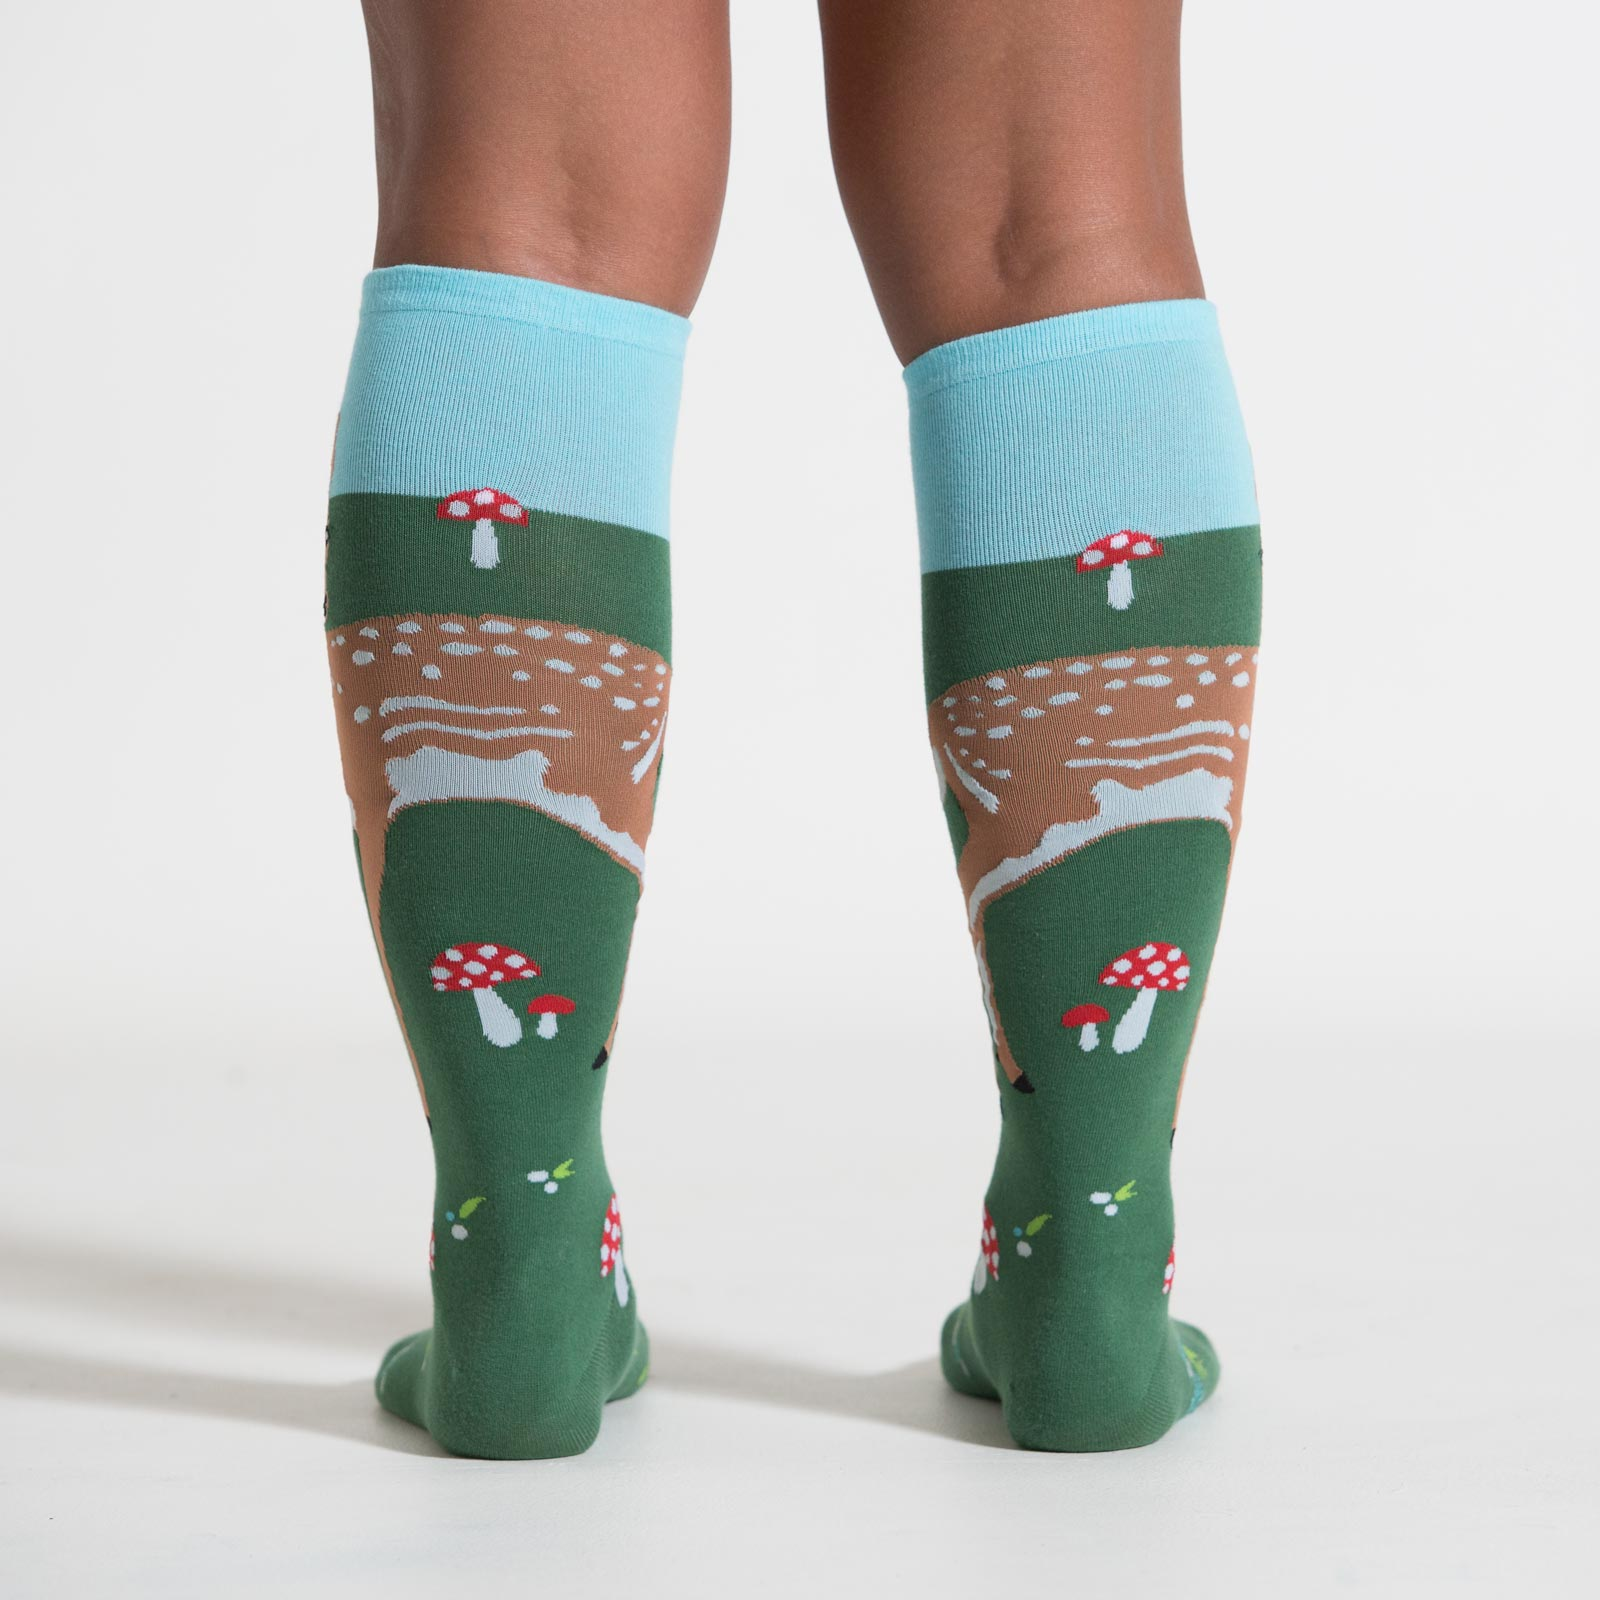 Women's Knee High Socks Fawn Back